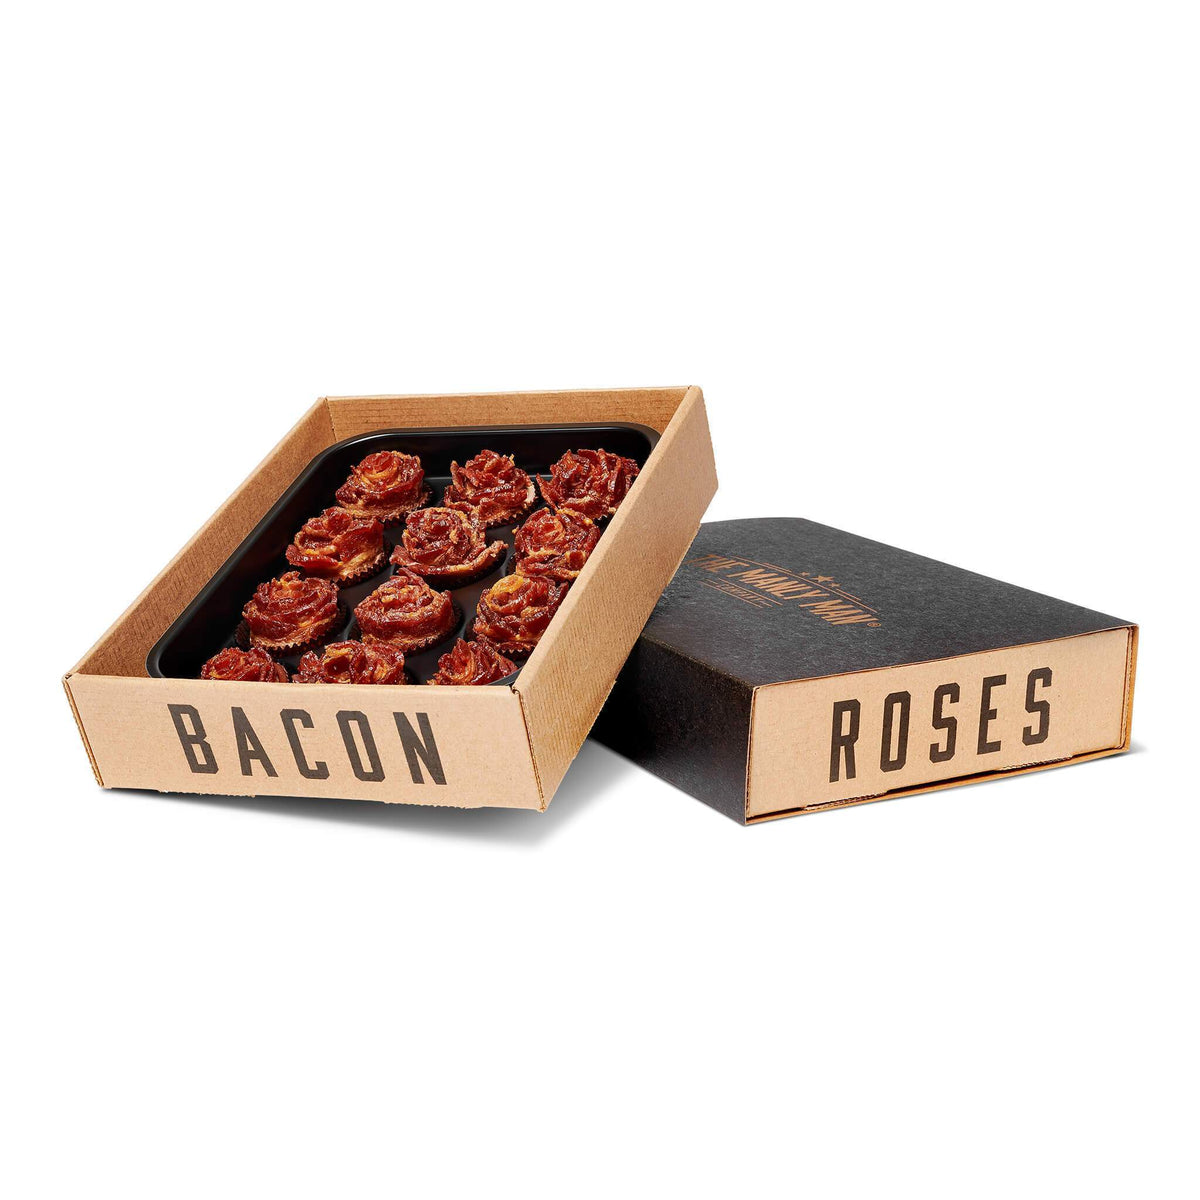 Box of BACON ROSES + Dark Chocolate, partially sitting on top of it's cover, on white background